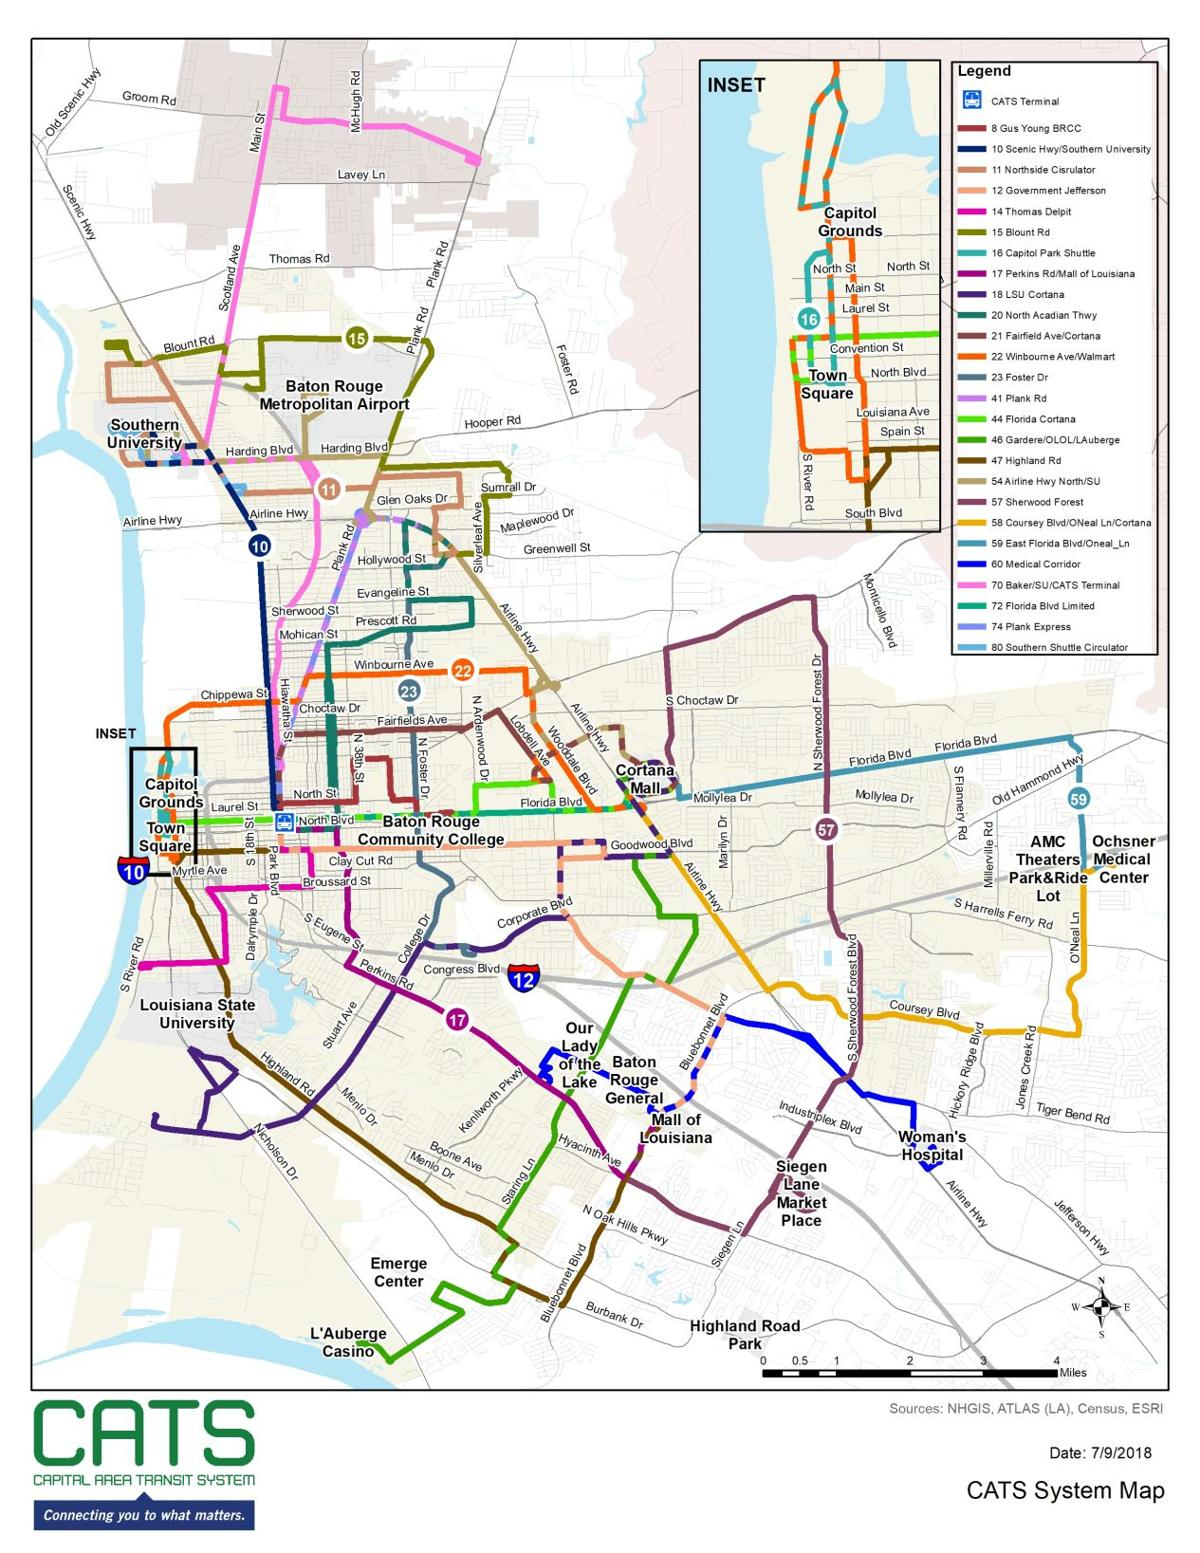 Proposed new bus routes